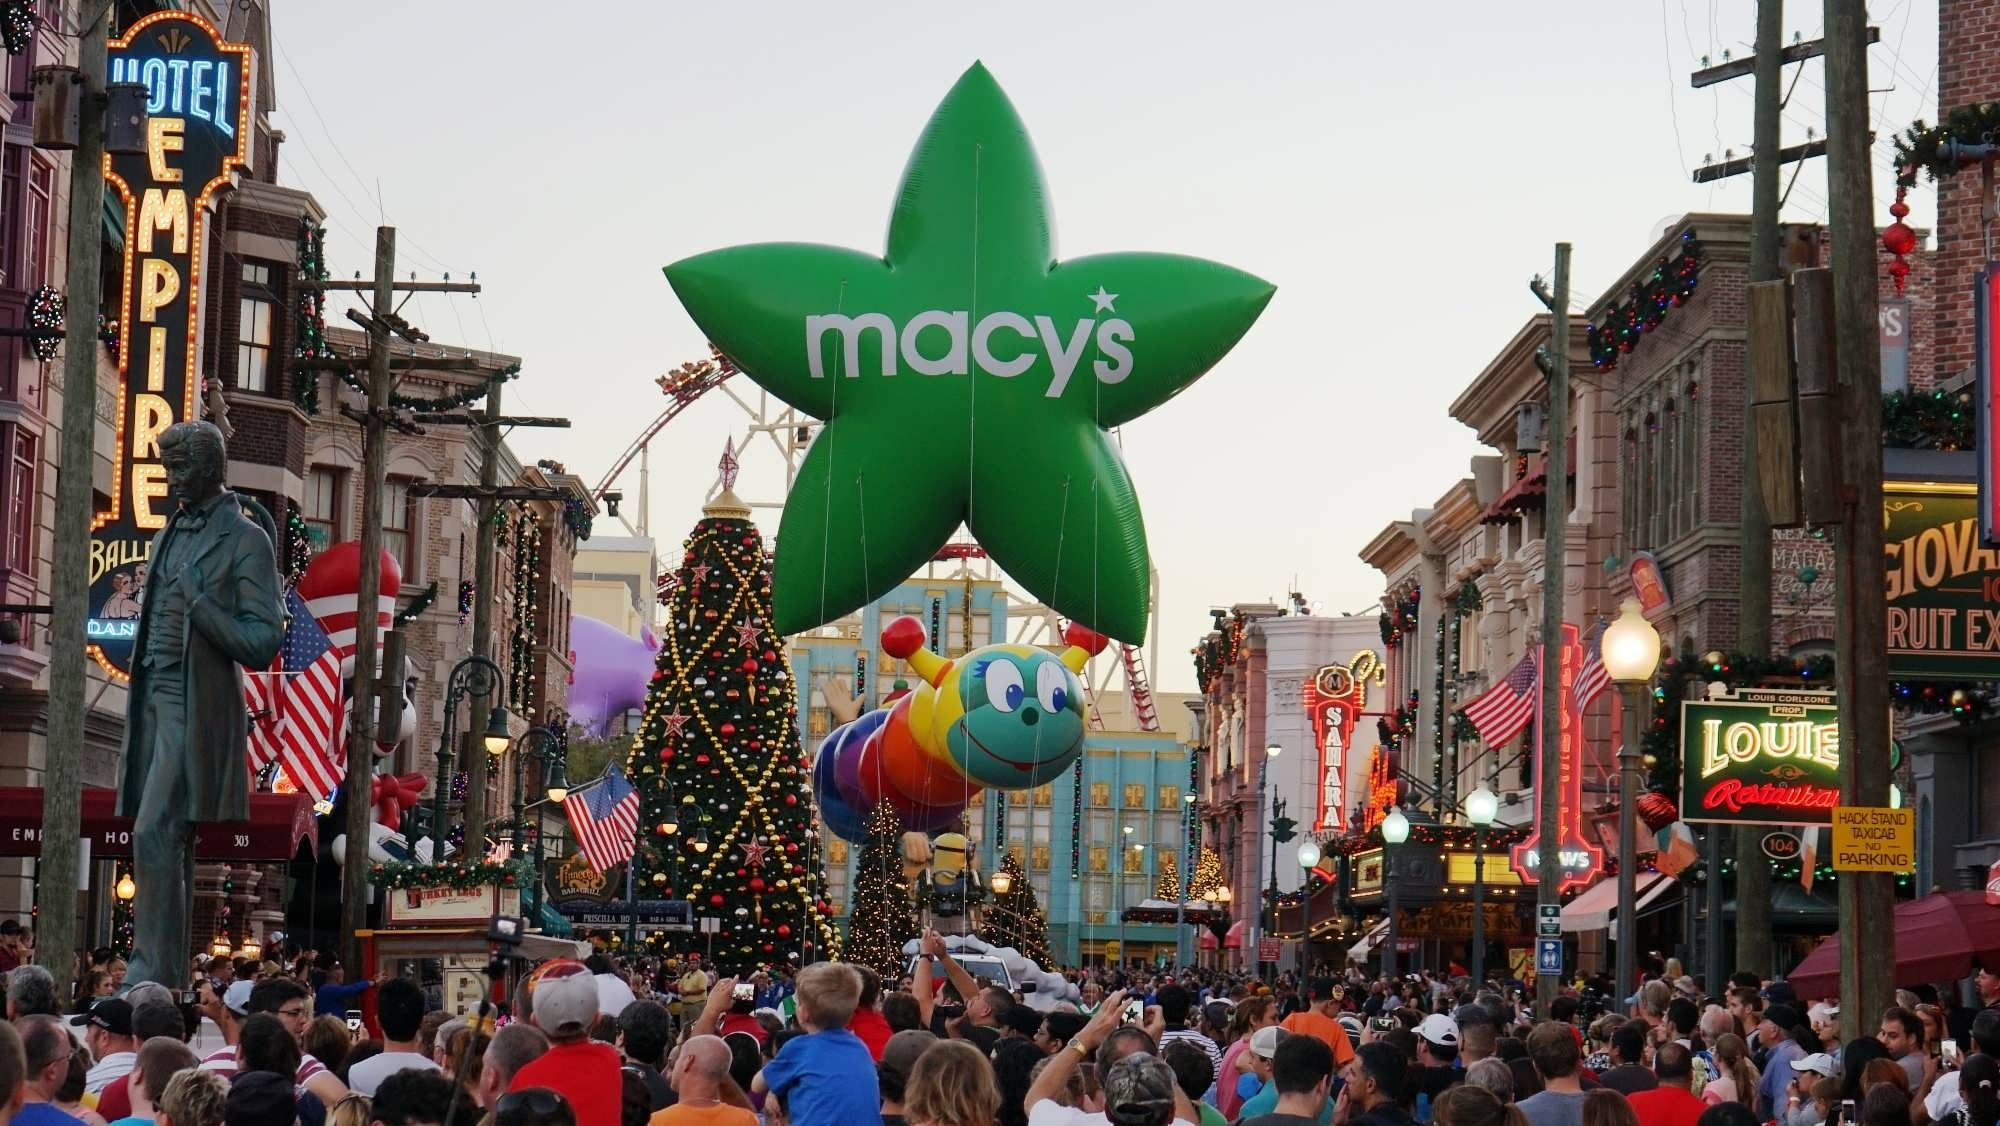 The big event at Universal Studios Florida is the Macy's Holiday ...